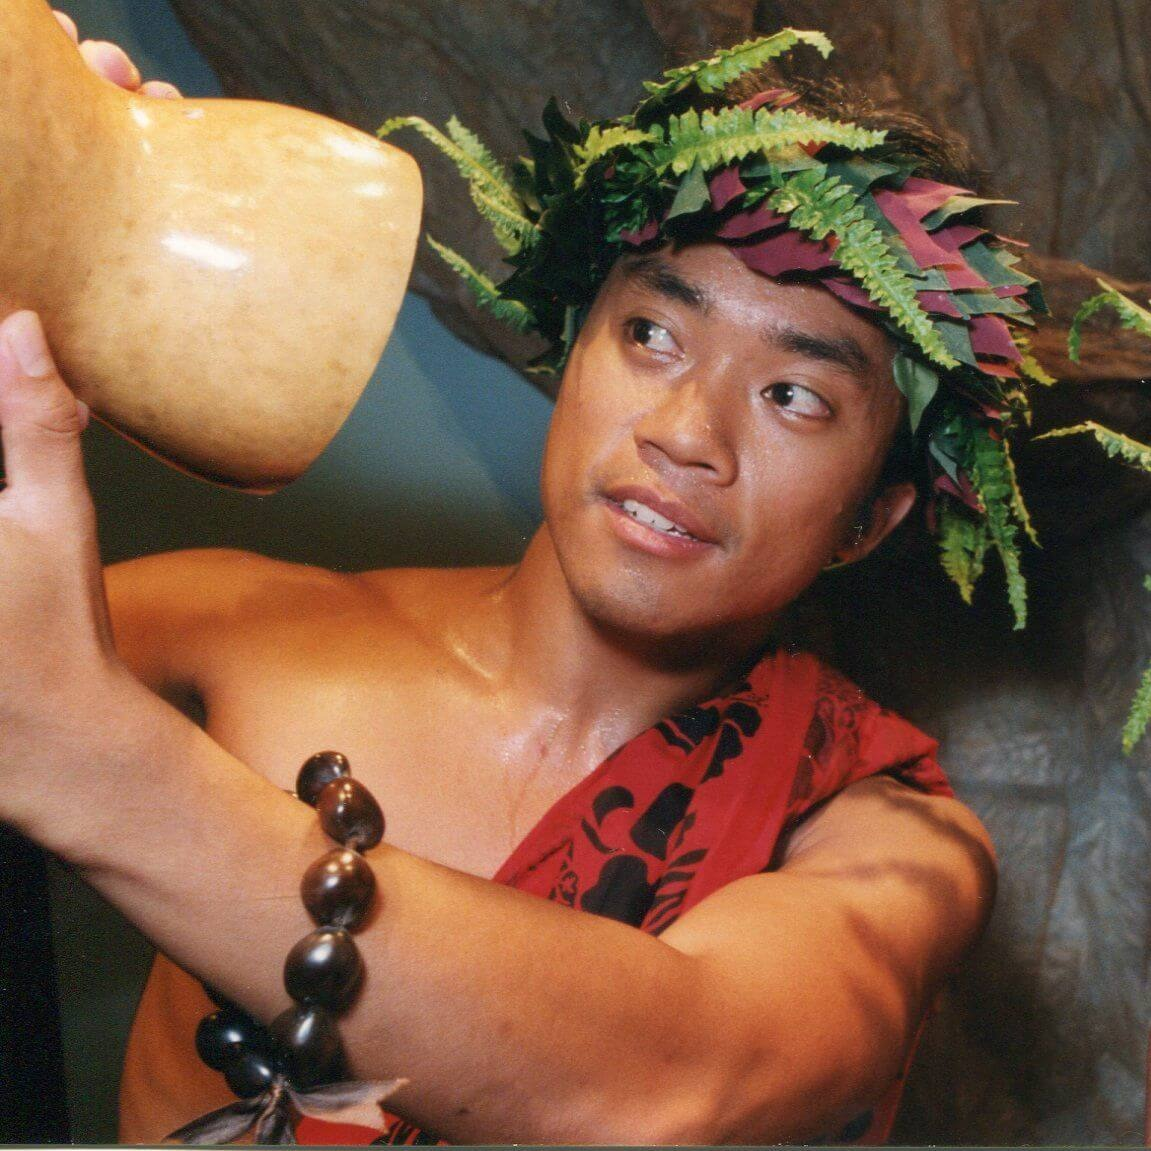 MAUI AND THE SOUL OF THE SUN - by MARCUS VRILIUS QUINIONES directed by MARCUS VRILIUS QUINIONES & Rick ShiomiSeptember 30 - October 15, 2000